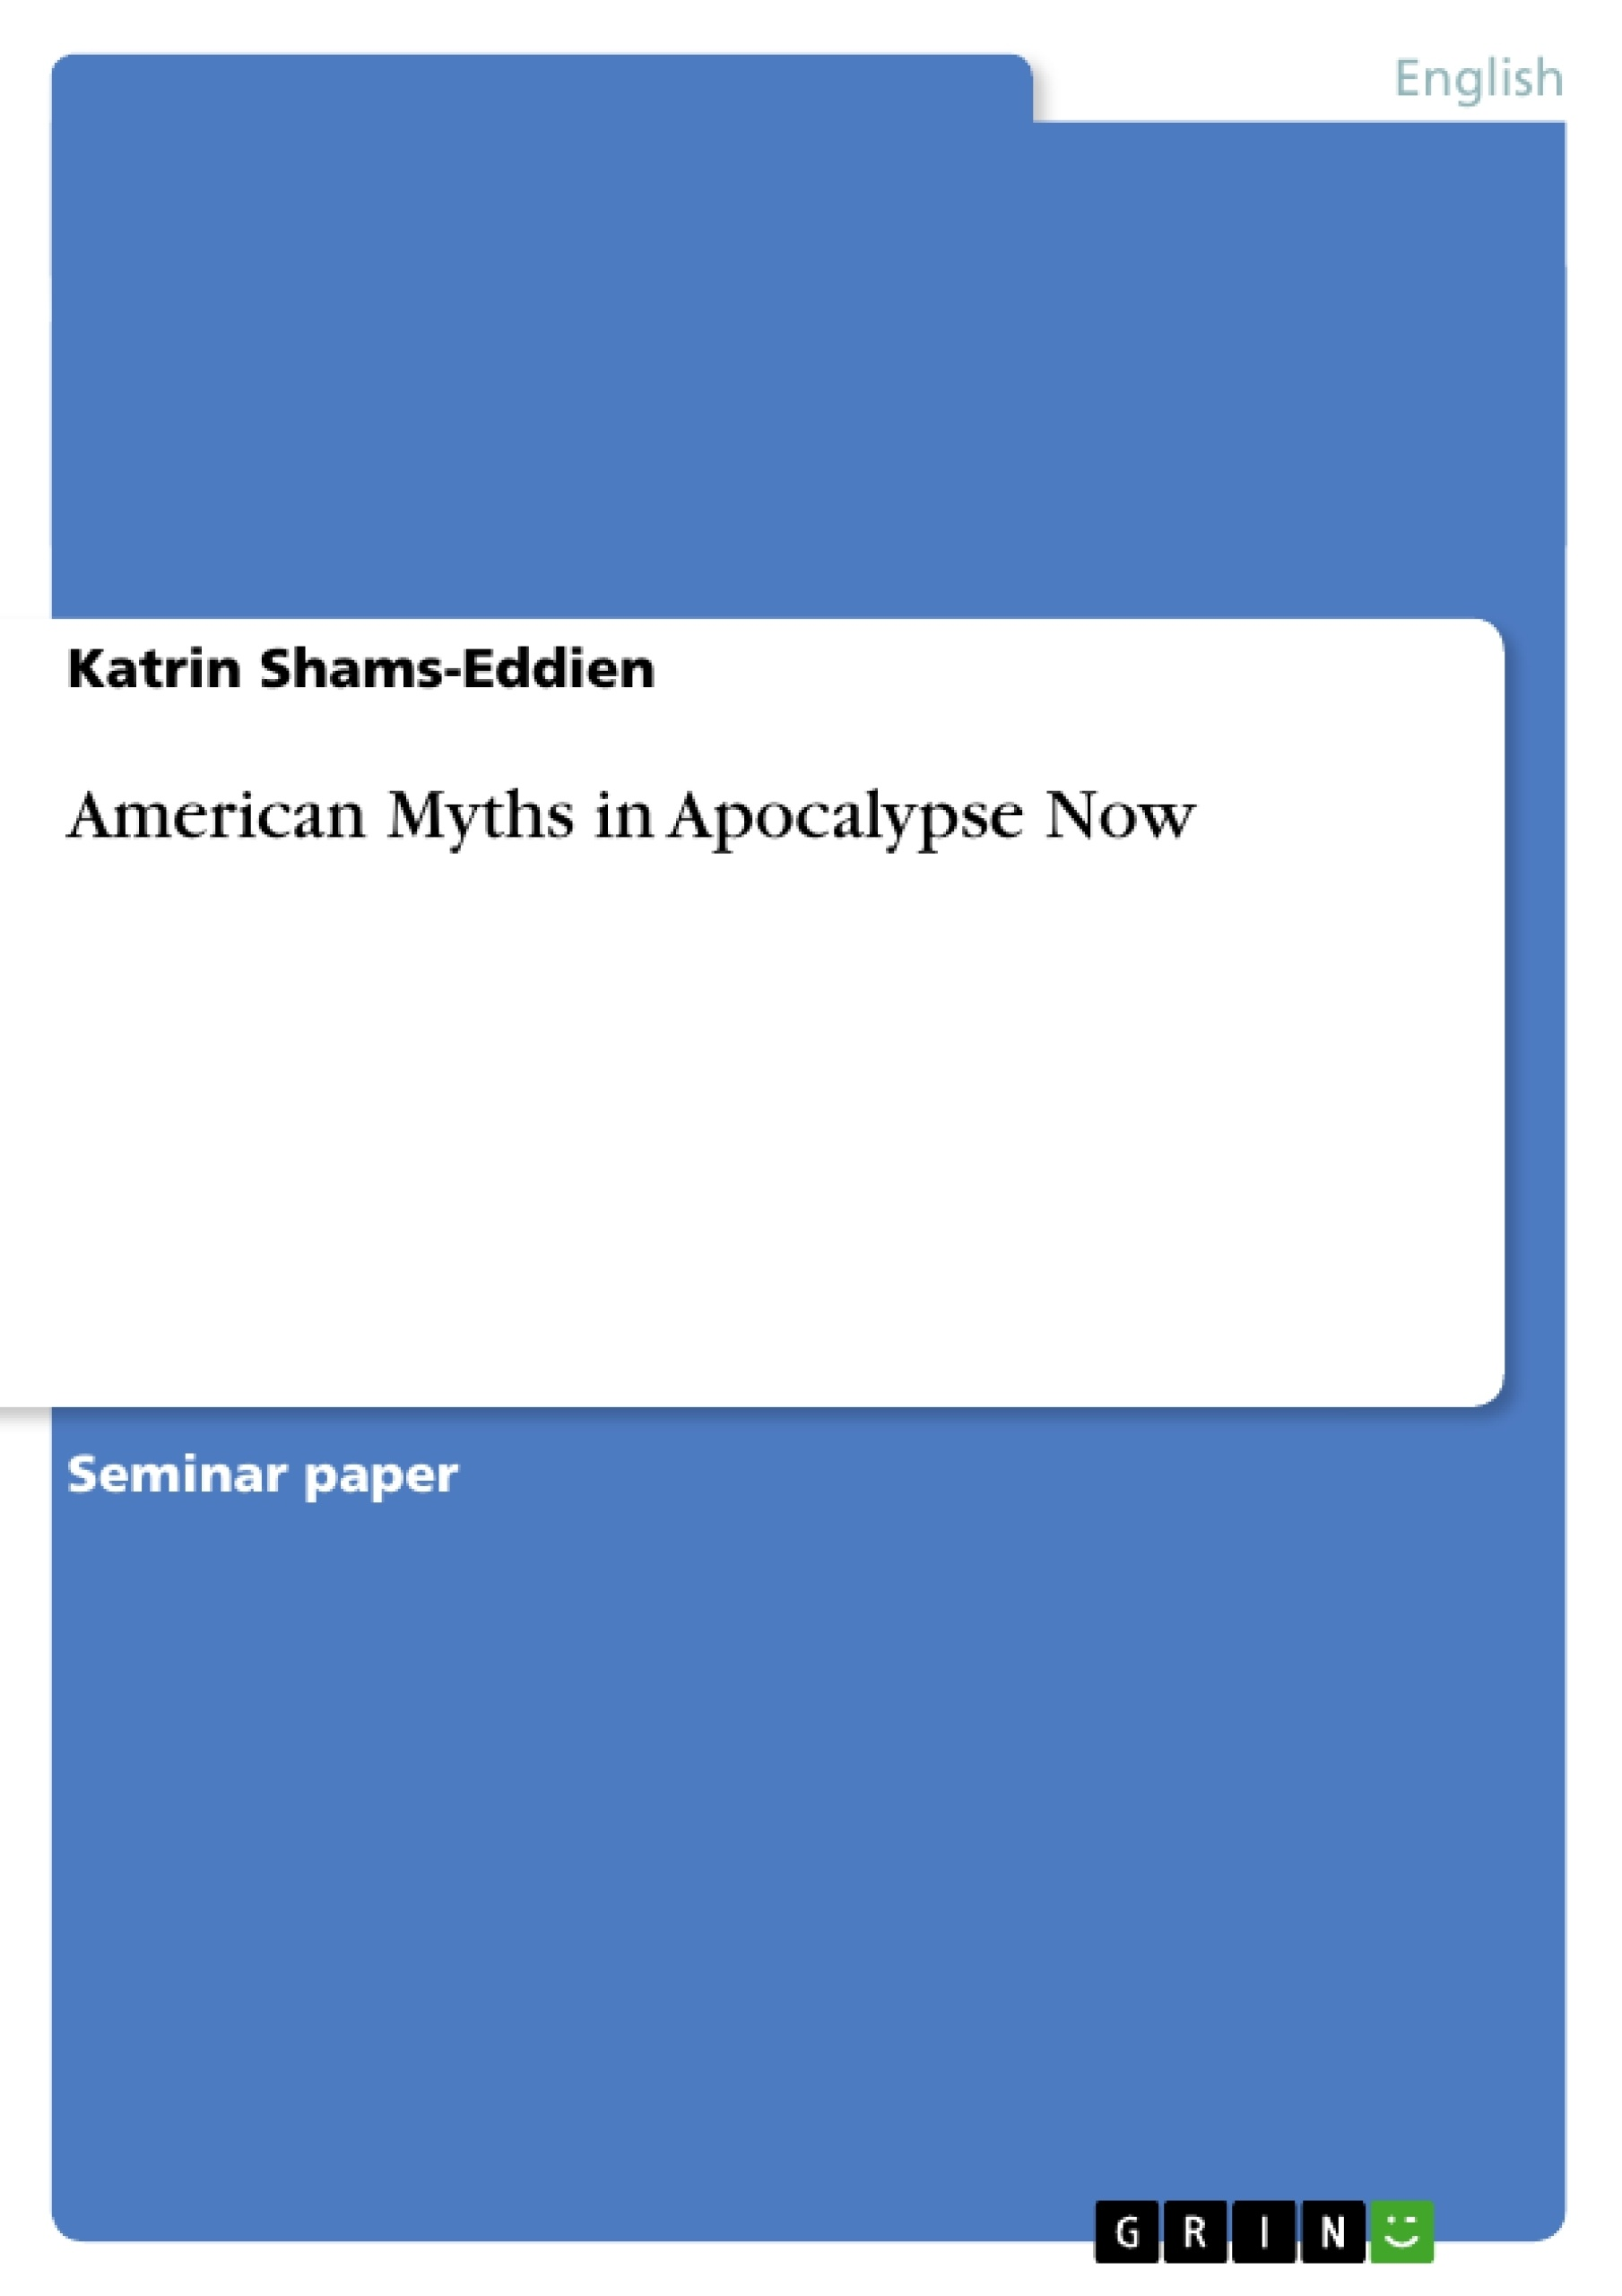 Title: American Myths in Apocalypse Now